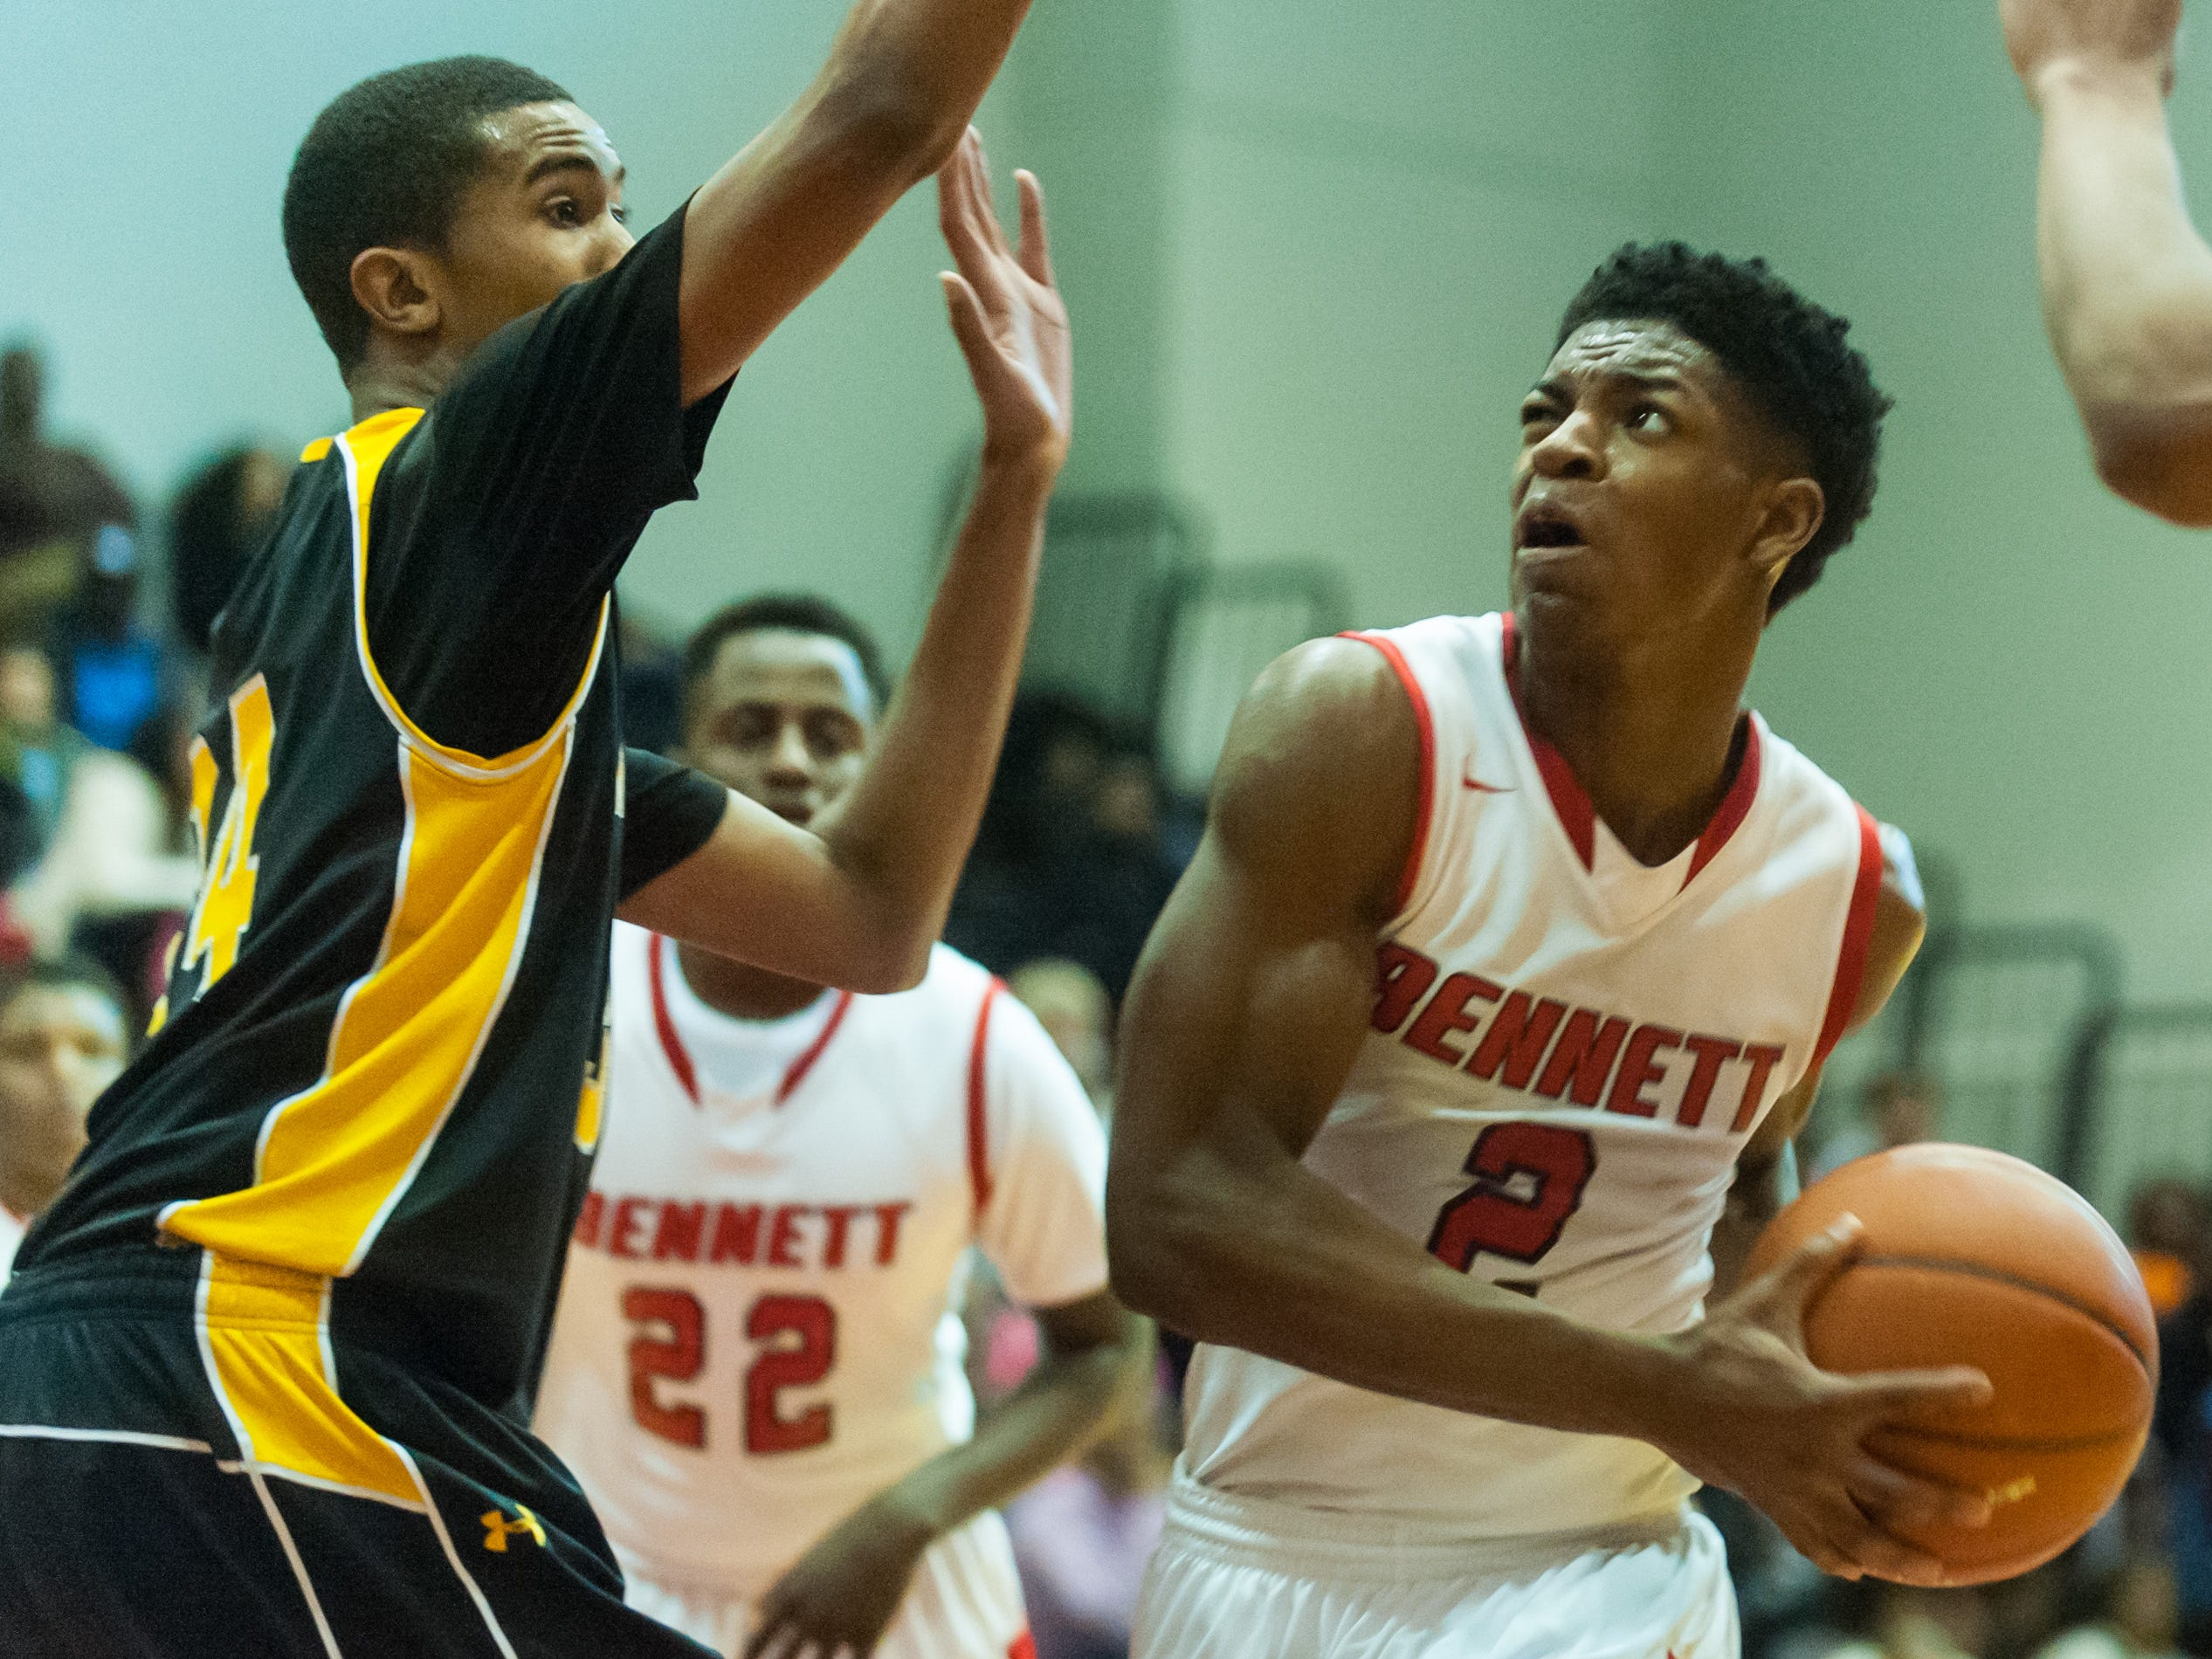 James M Bennett forward Barry Gaines takes a shot against Wicomico at James M Bennett.